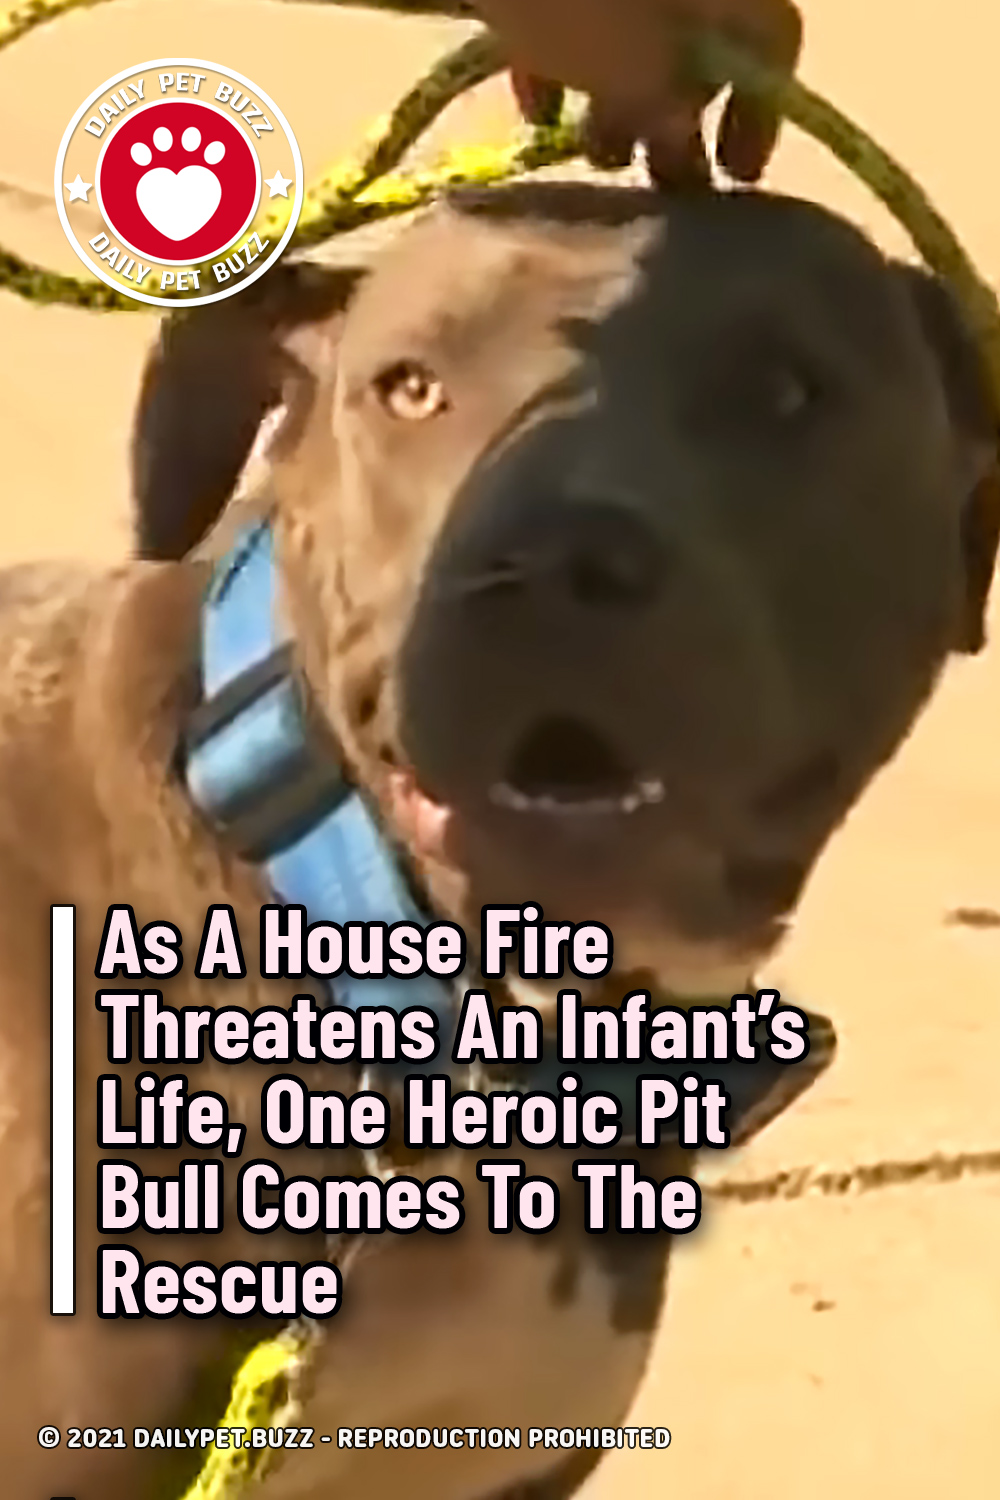 As A House Fire Threatens An Infant's Life, One Heroic Pit Bull Comes To The Rescue